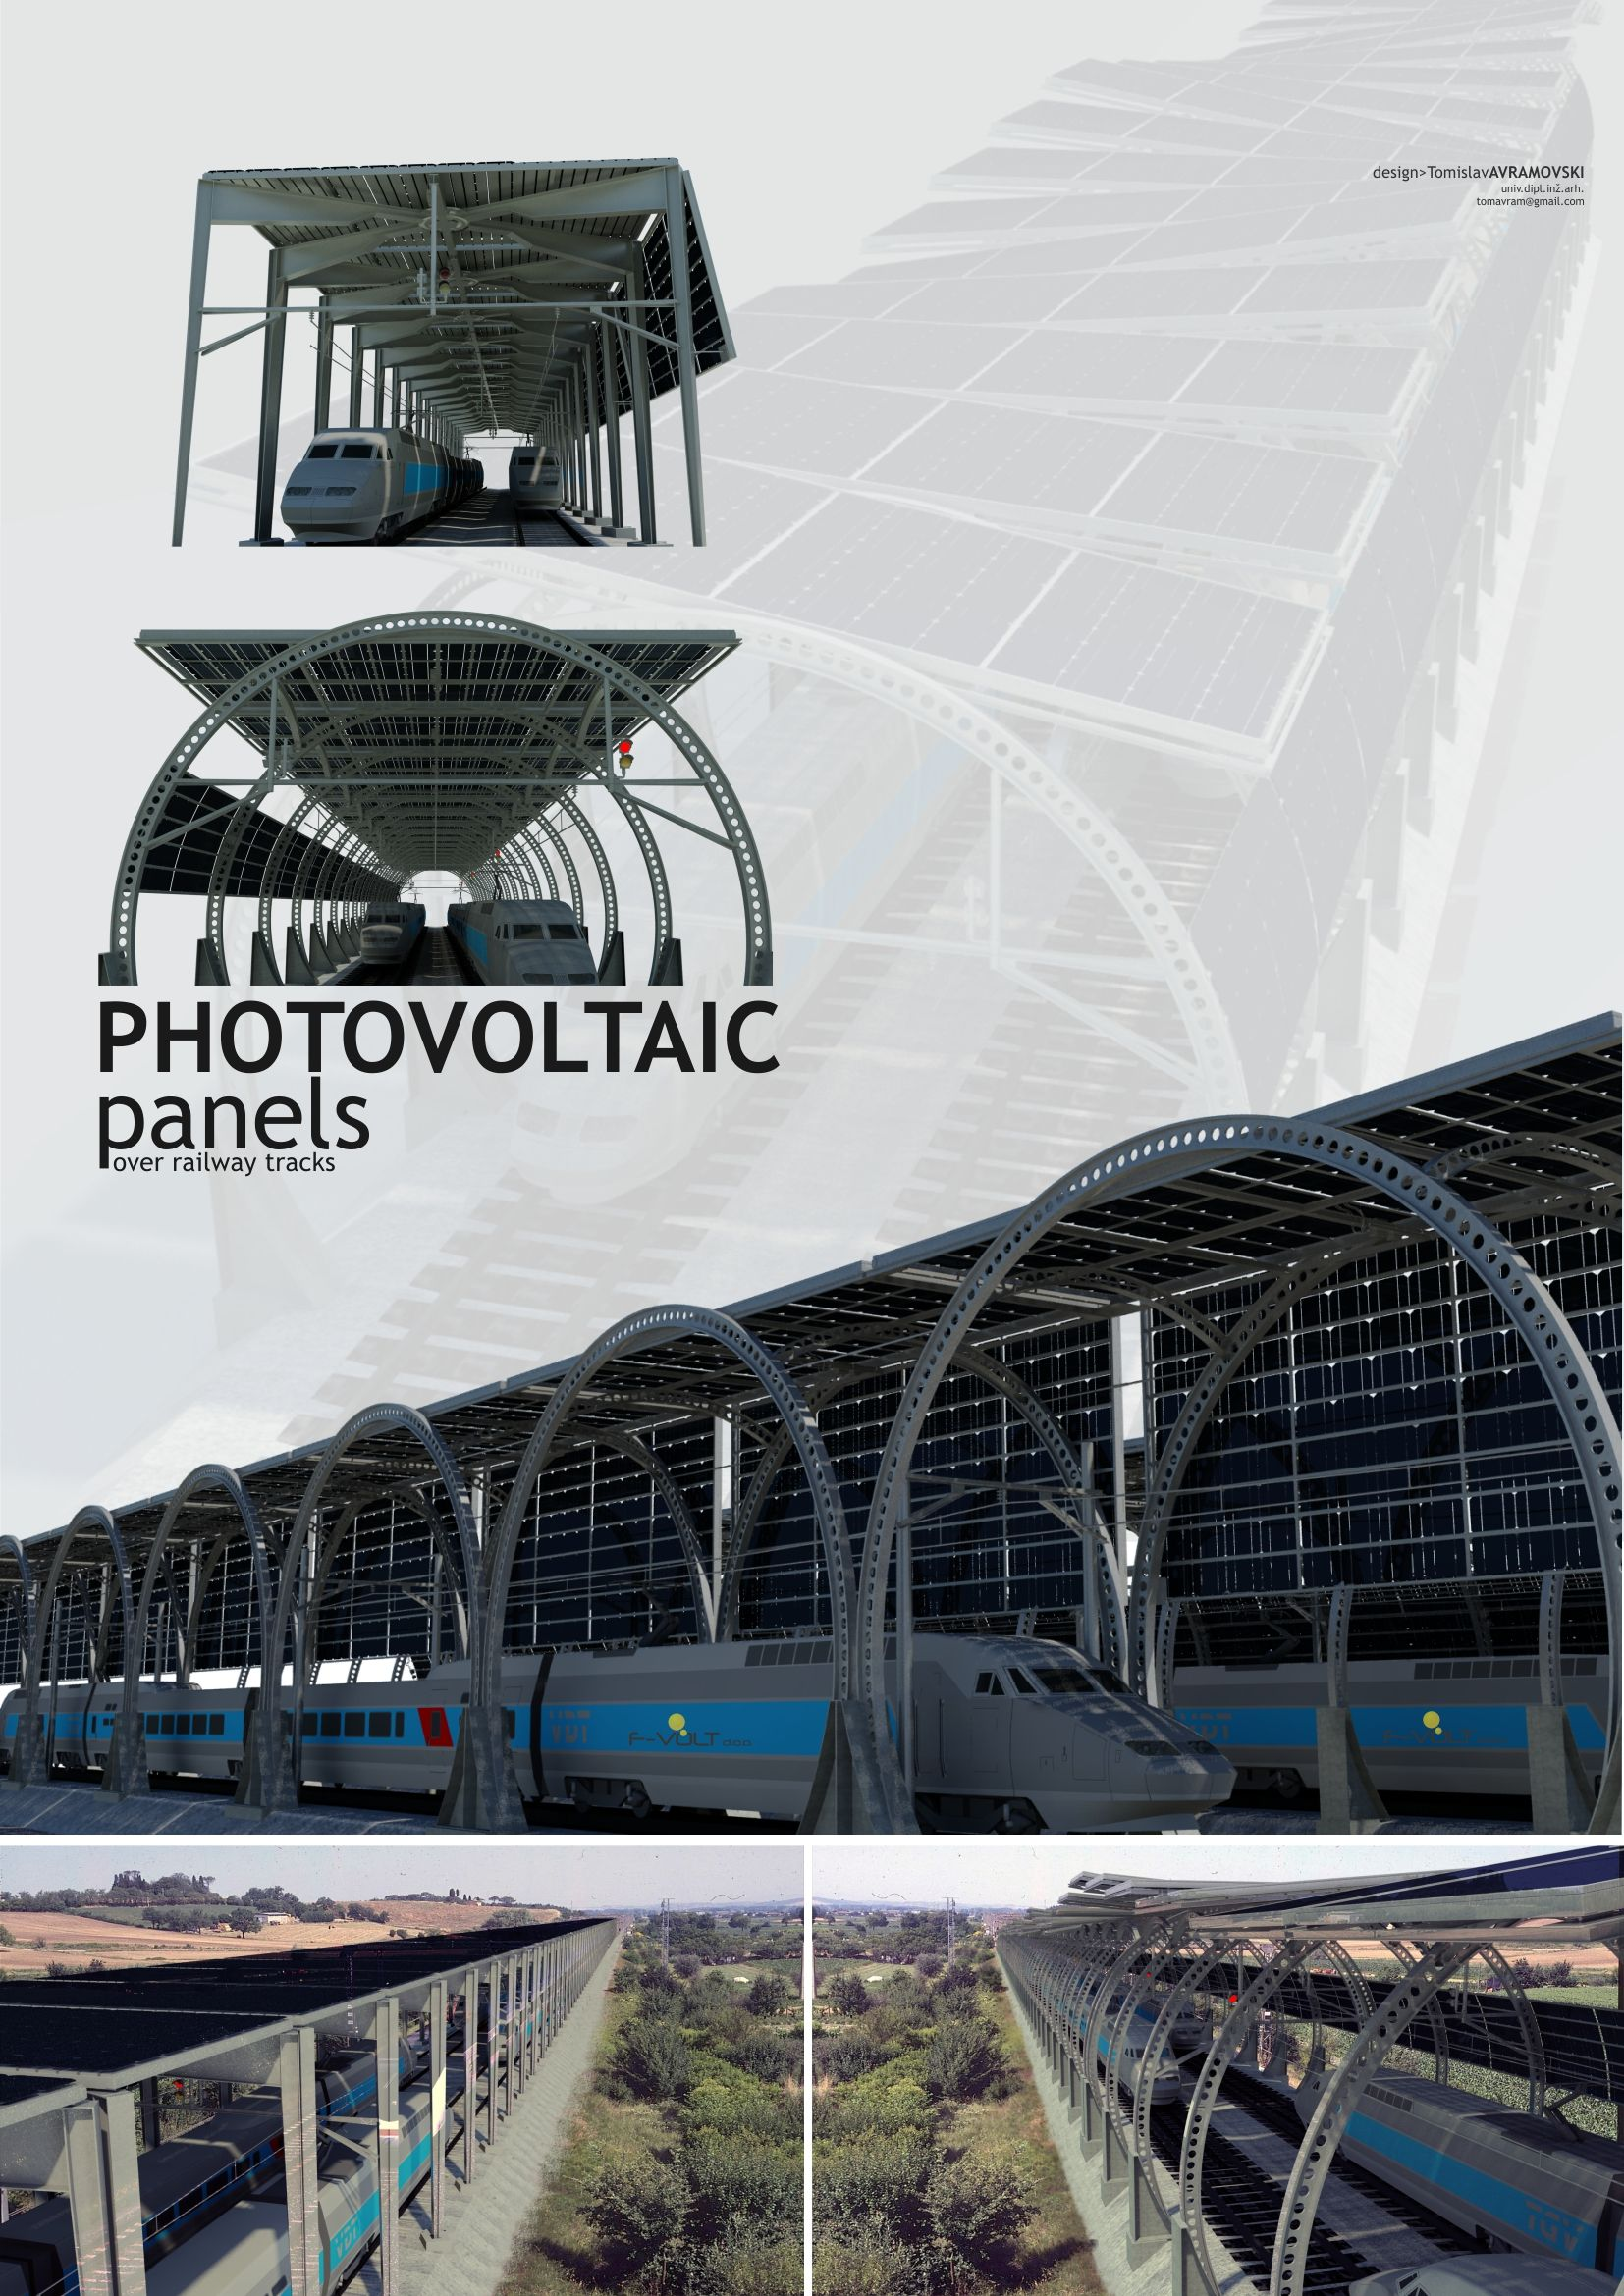 Innovative construction for photo-voltaic panels over railway tracks